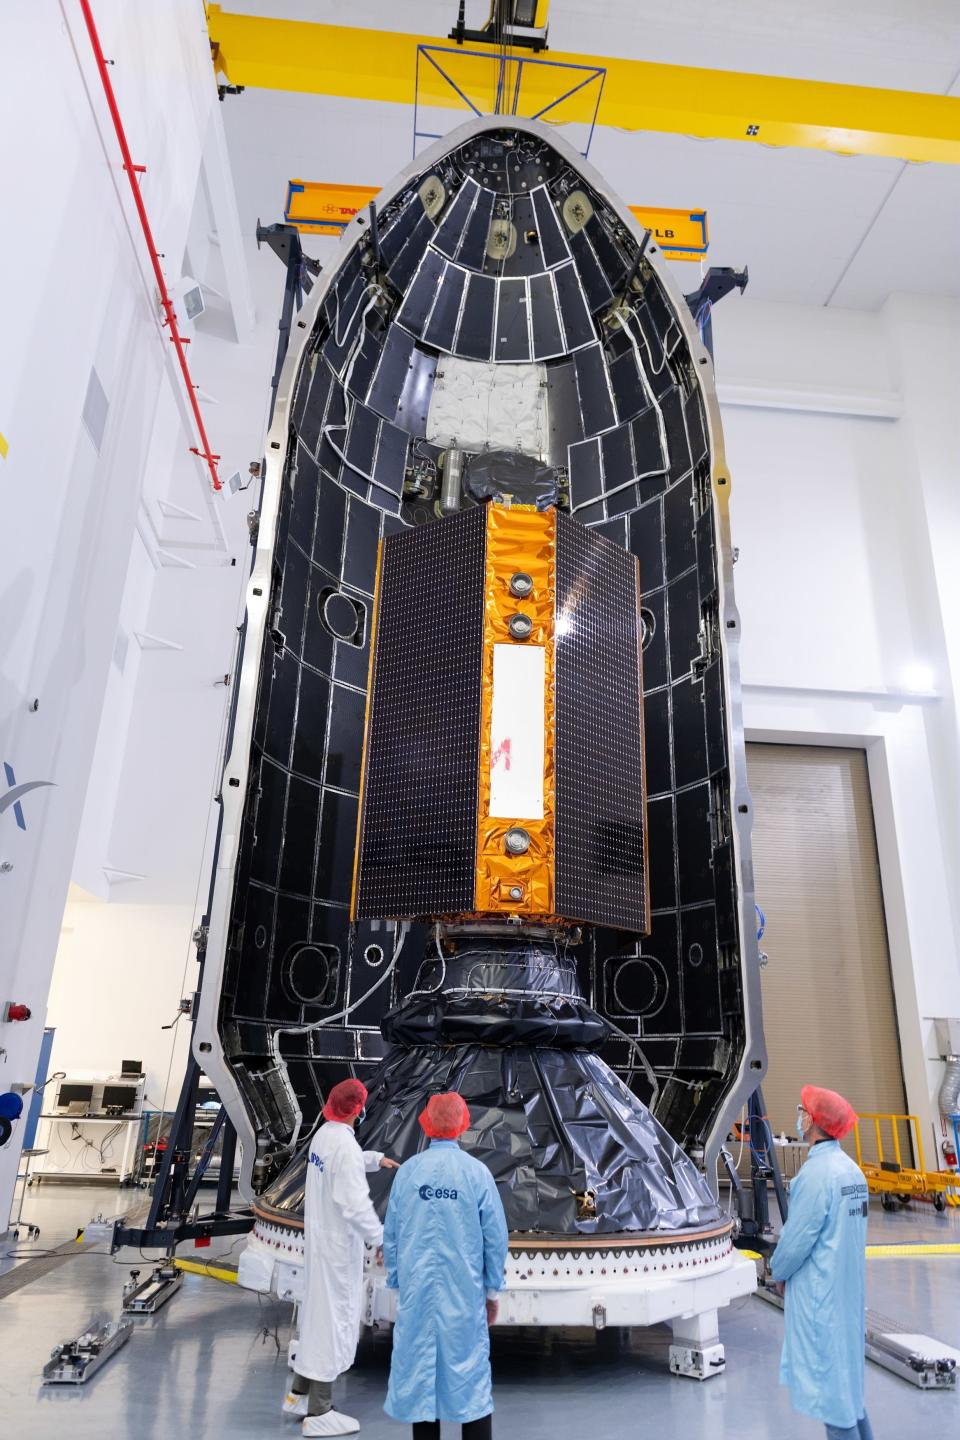 In this Nov. 3, 2020 photo, provide by the European Space Agency, the Sentinel-6 satellite is placed inside the upper stage of a Falcon 9 rocket. The joint European-U.S. satellite mission to improve measurements of sea level rise is being launched from Vandenberg Air Force Base in California on Saturday Nov. 22, 2020. The Sentinel-6 Michael Freilich satellite, named after the late director of NASA's Earth Science Division, is seen as a crucial tool for monitoring the impact of global warming on coastlines, where billions of people face the risk of encroaching oceans in the coming decades. (ESA/Stephane Corvaja via AP)